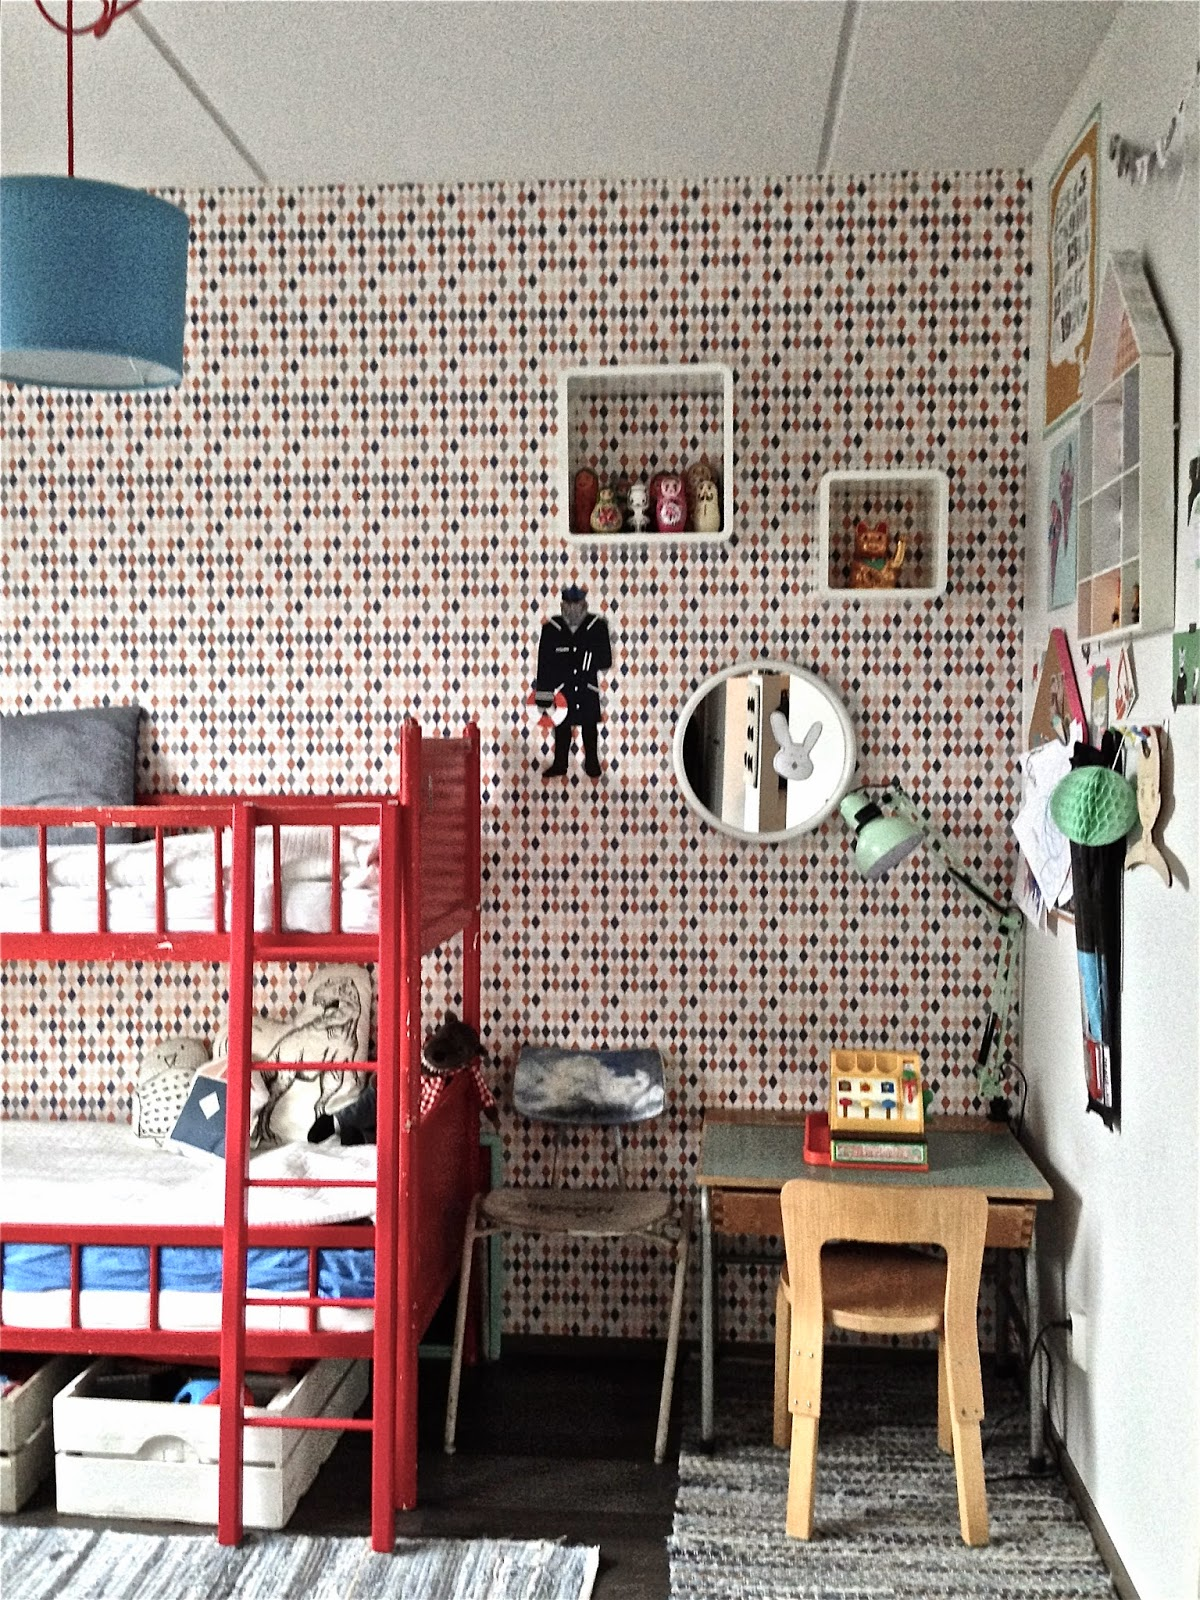 Barnrum, Kidsroom, Childrens room, Ferm Living, tapet,  wallpaper, Niemen tehtaat, våningssäng,  bunkbed, Aarrekid,